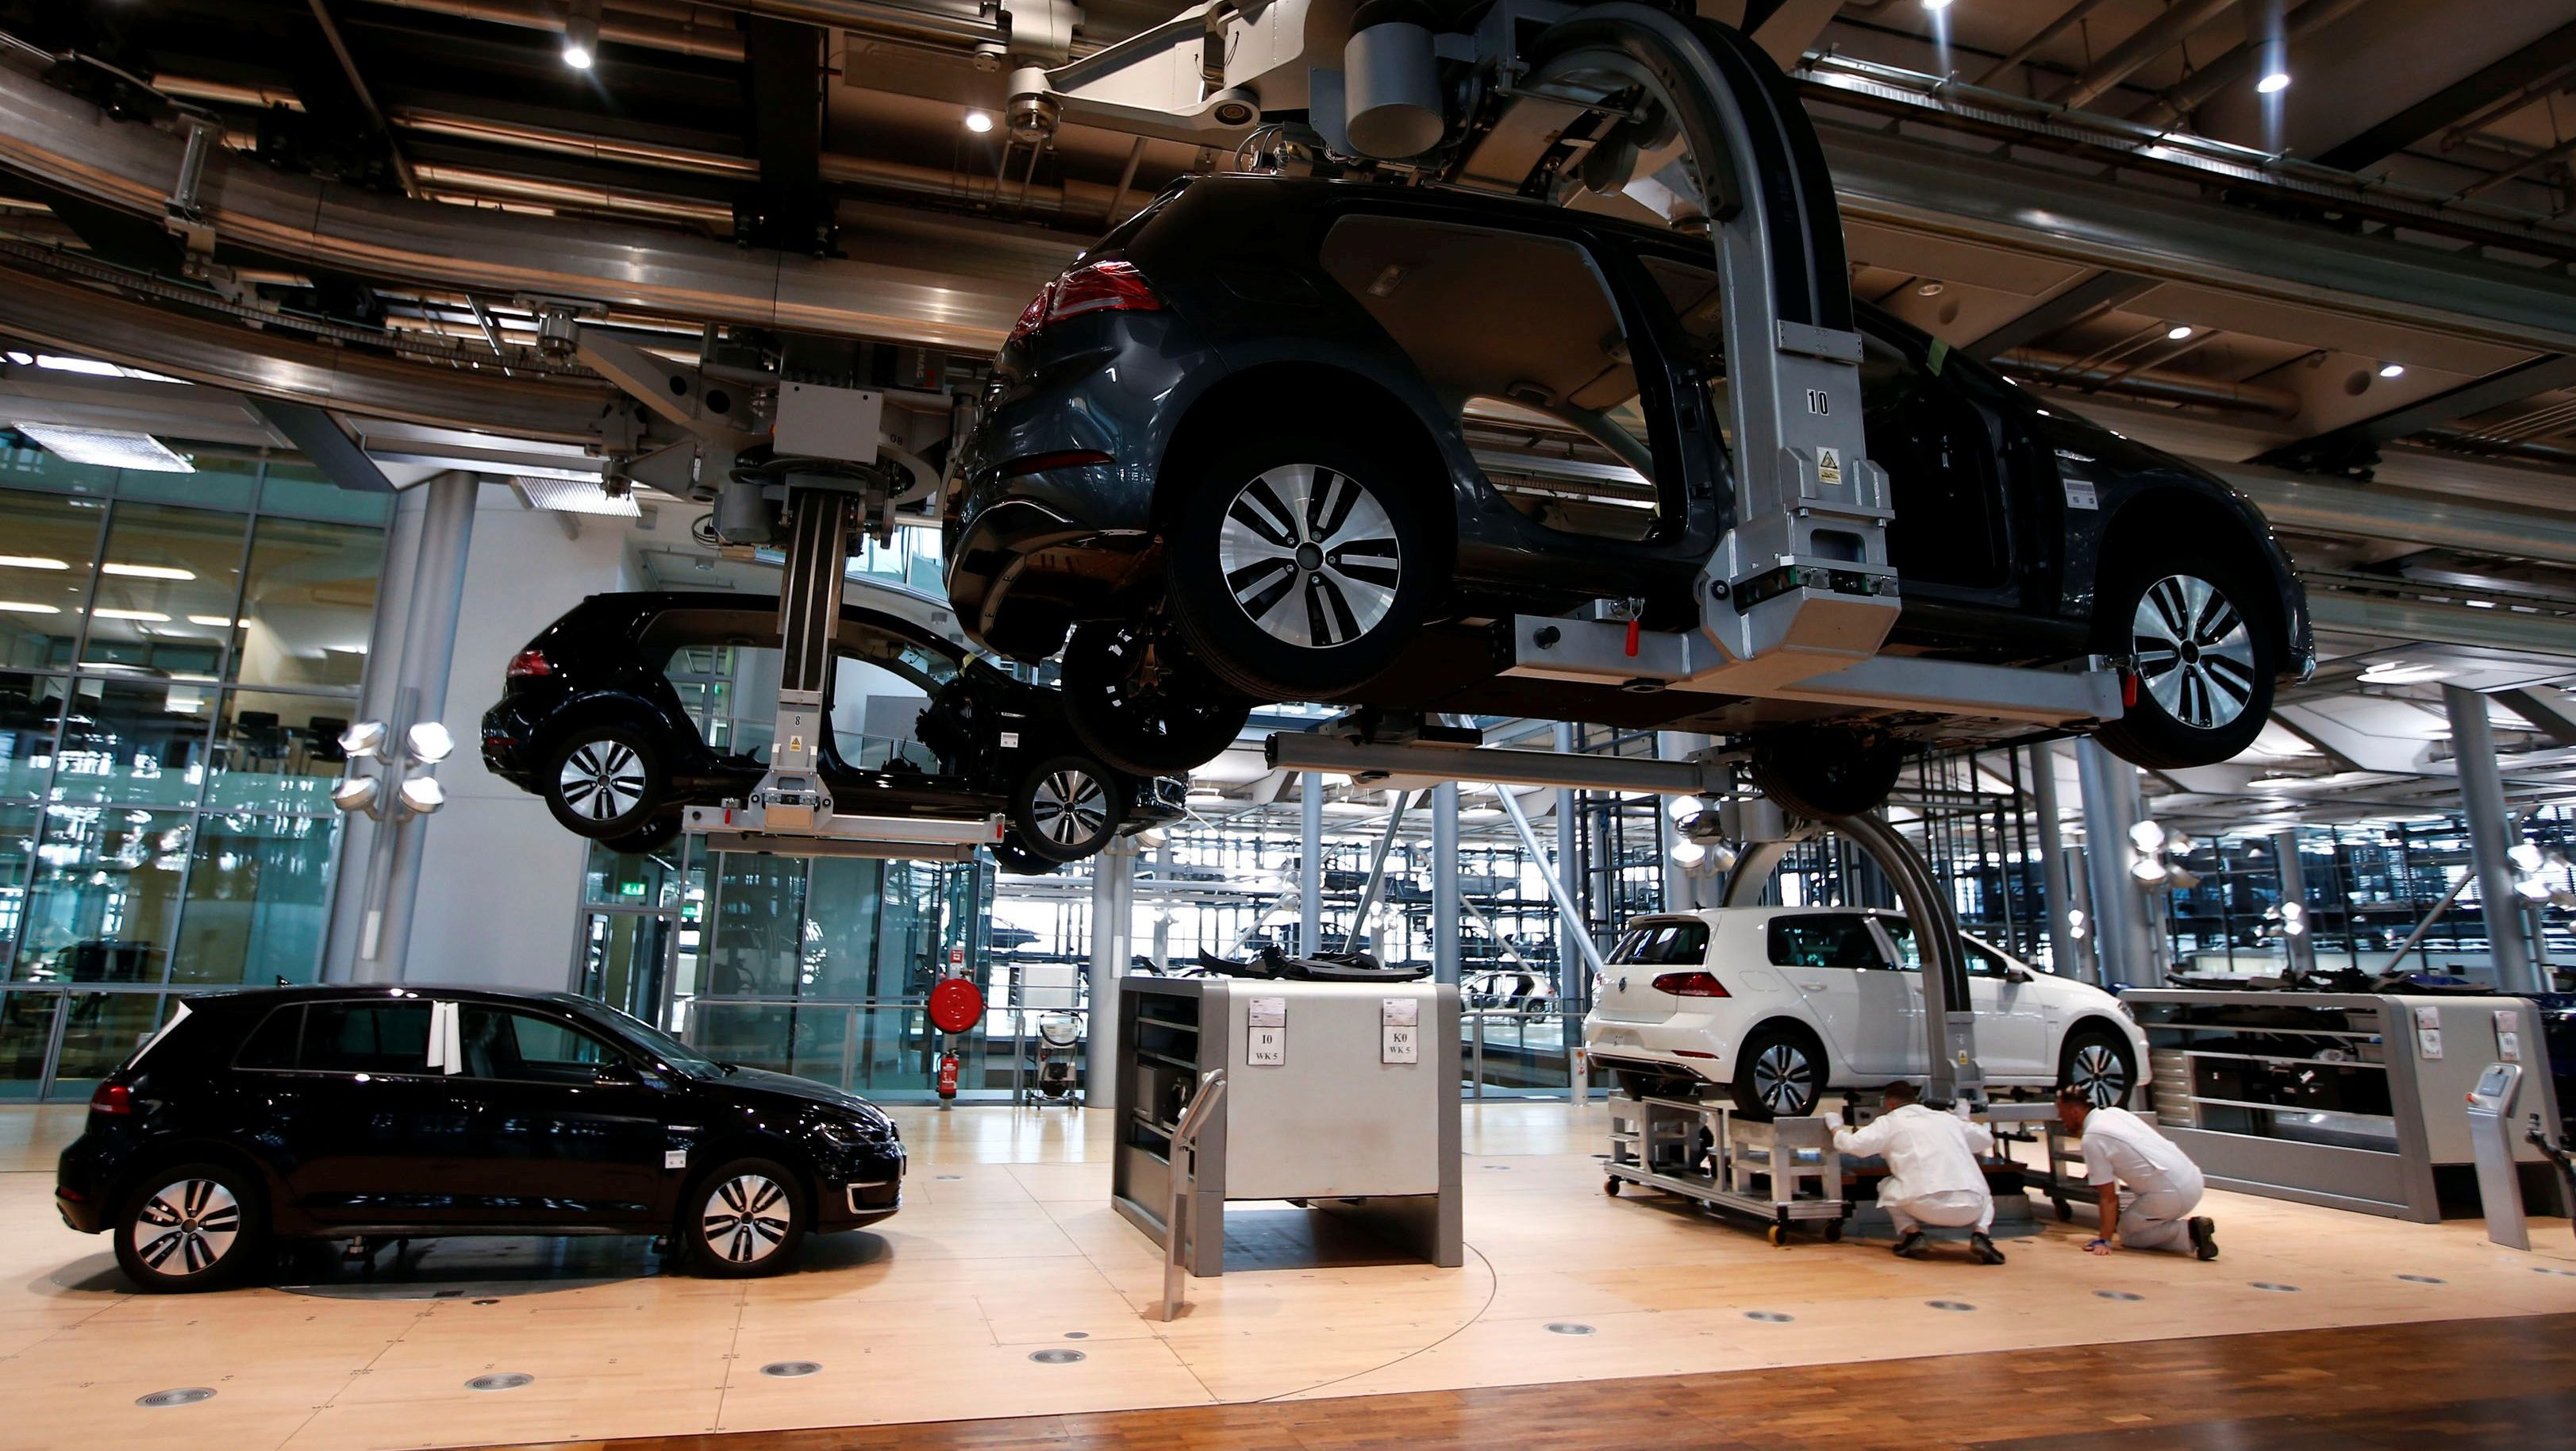 electric motor manufacturer volkswagen e golf steelmate car alarm wiring diagram will make 50 million cars quartz vw to elon mass producing is easy we re making